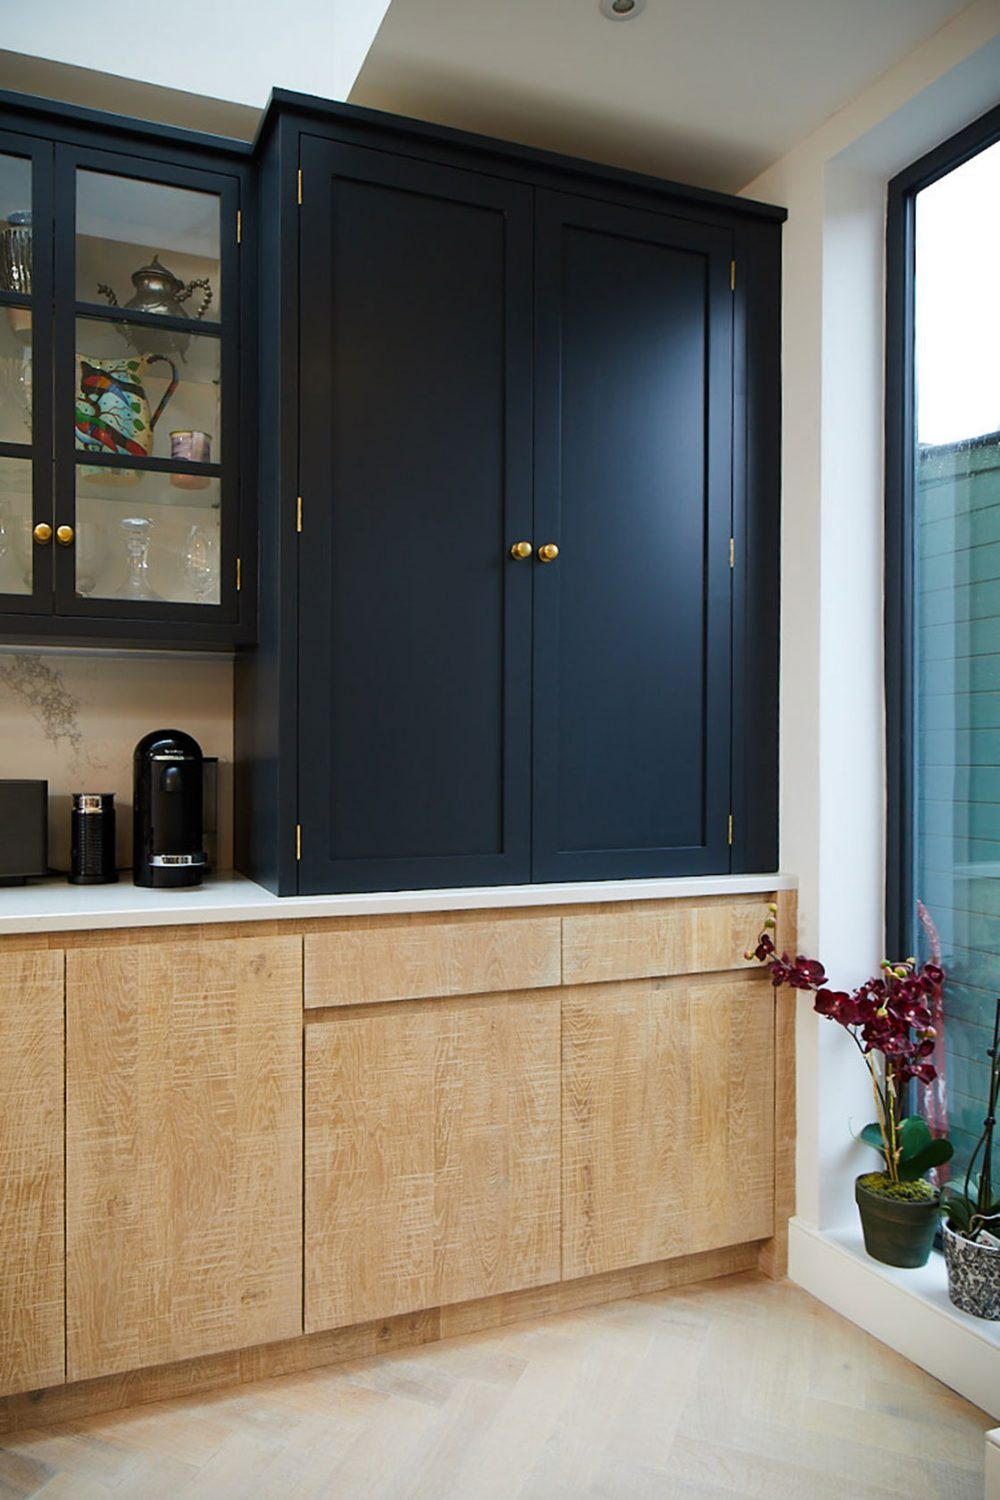 Dark blue shaker wall cabinets sit on Caesarstone worktop with limed oak slab base units below